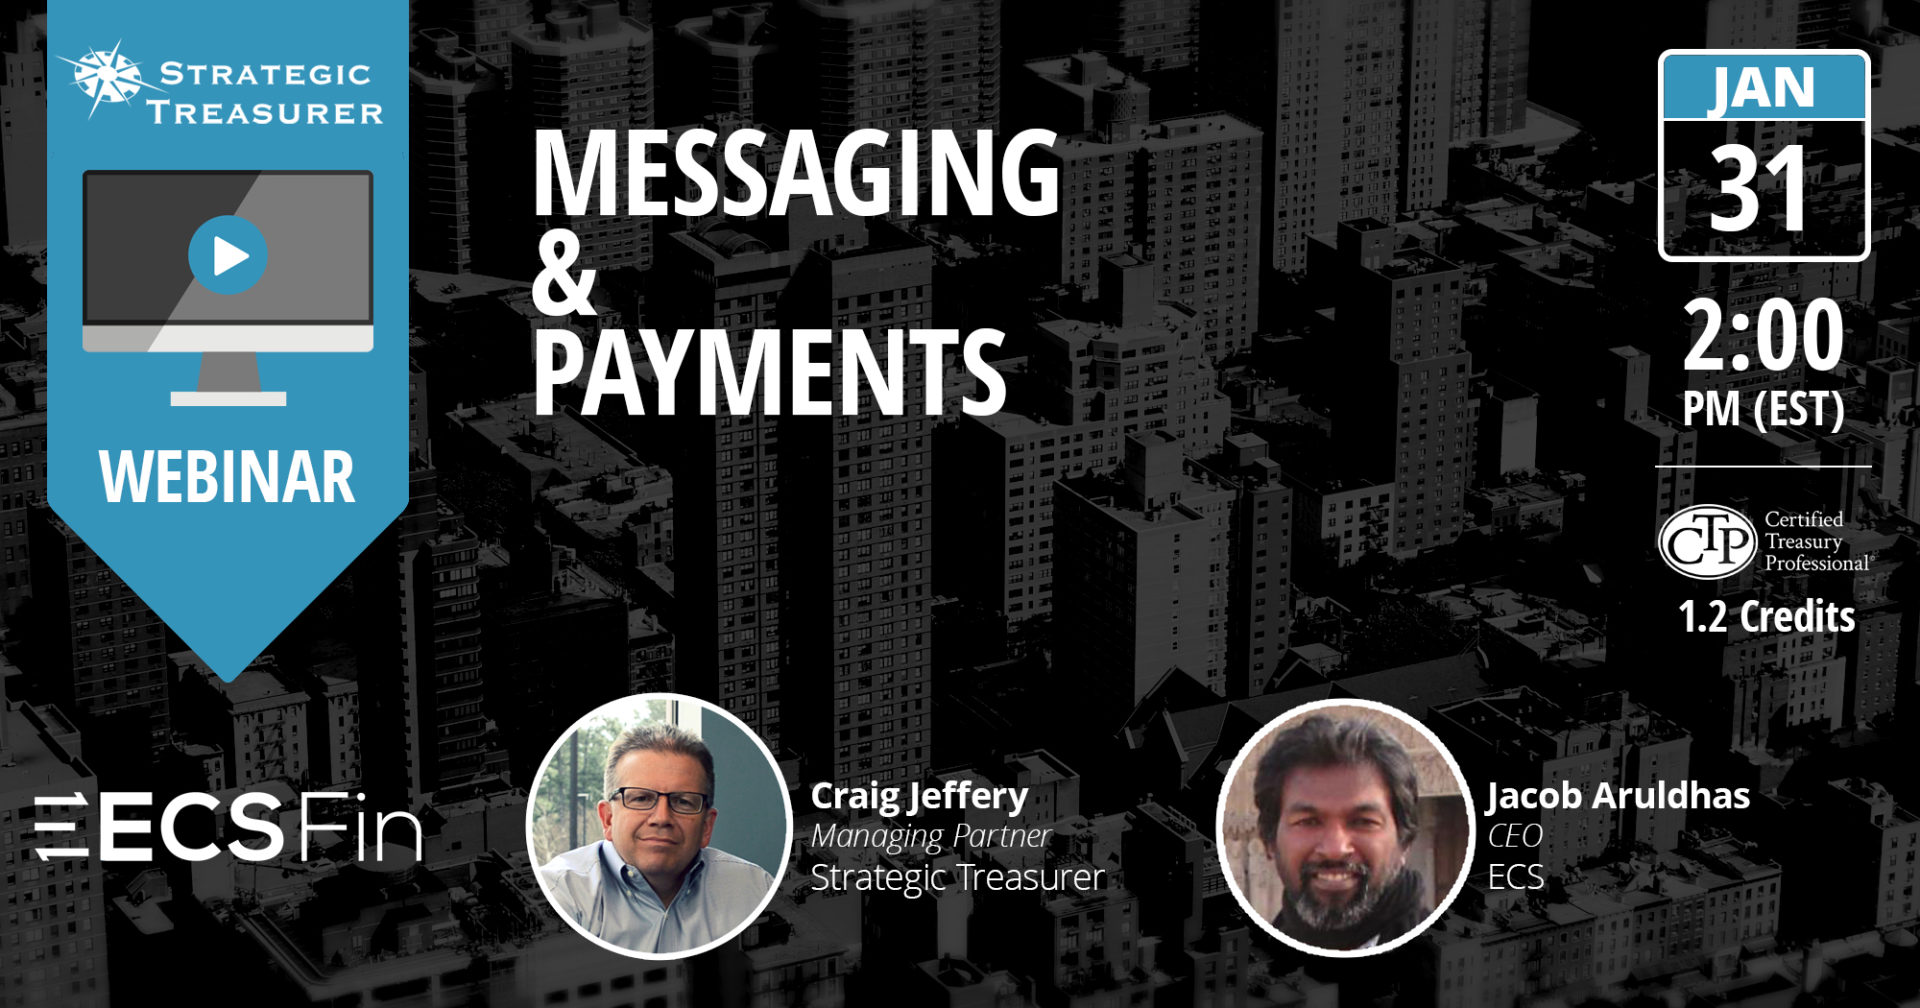 Messaging & Payments